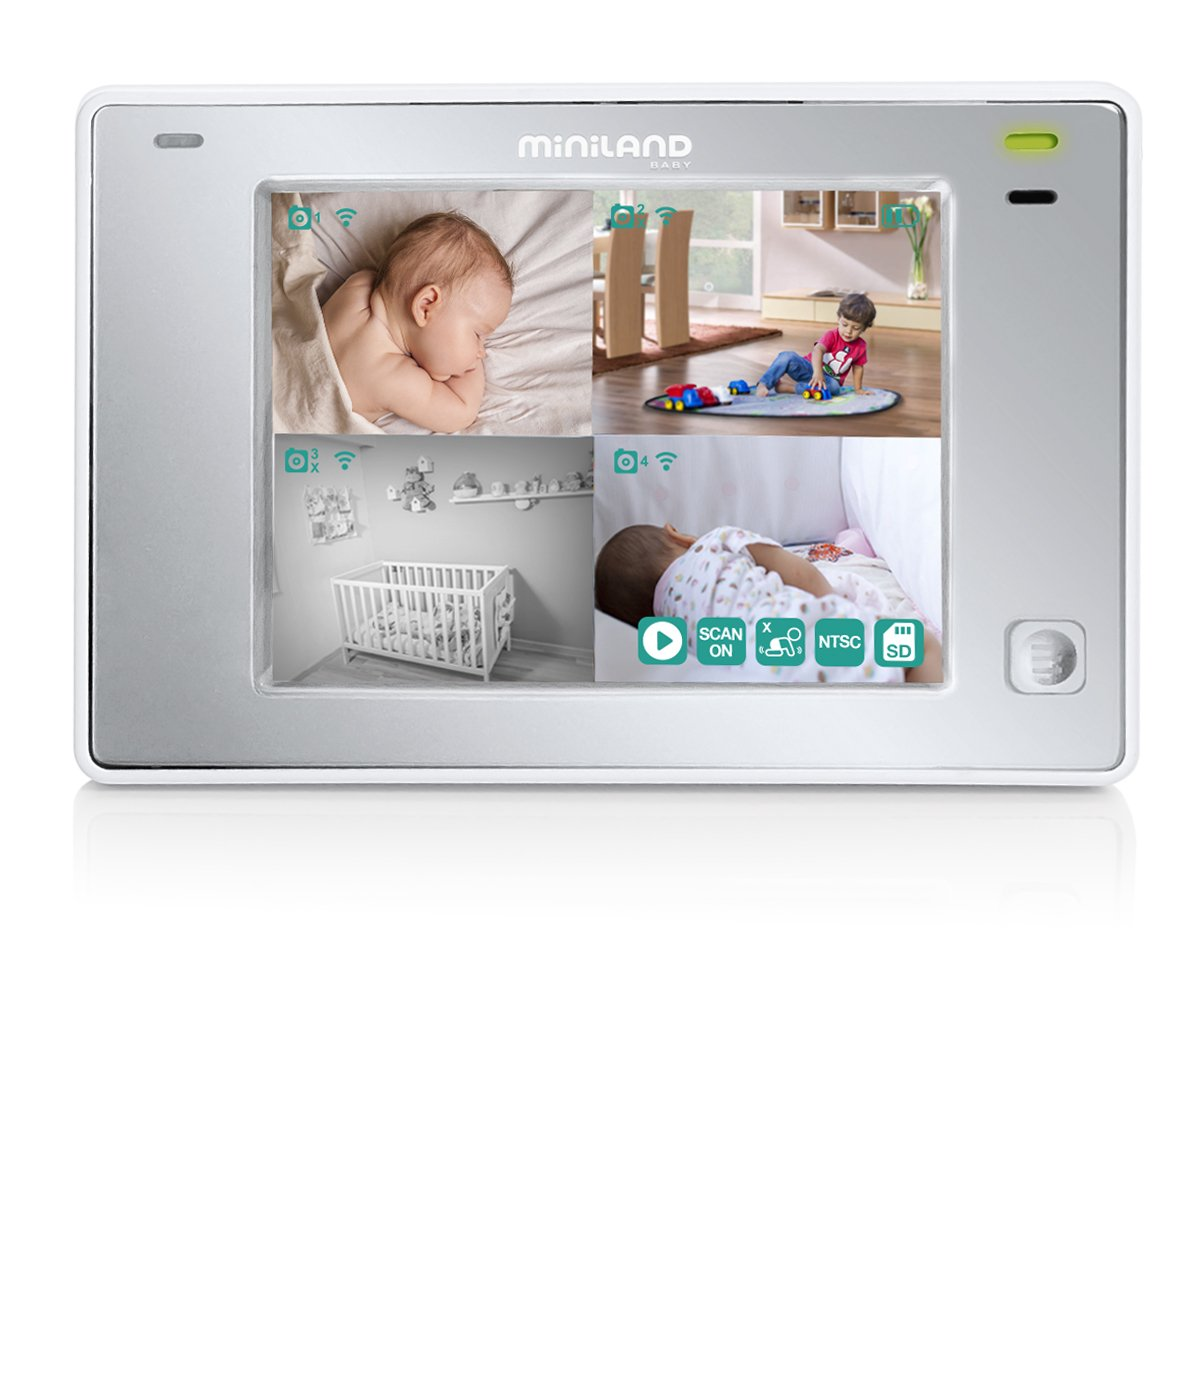 Miniland High Performance Baby Monitor